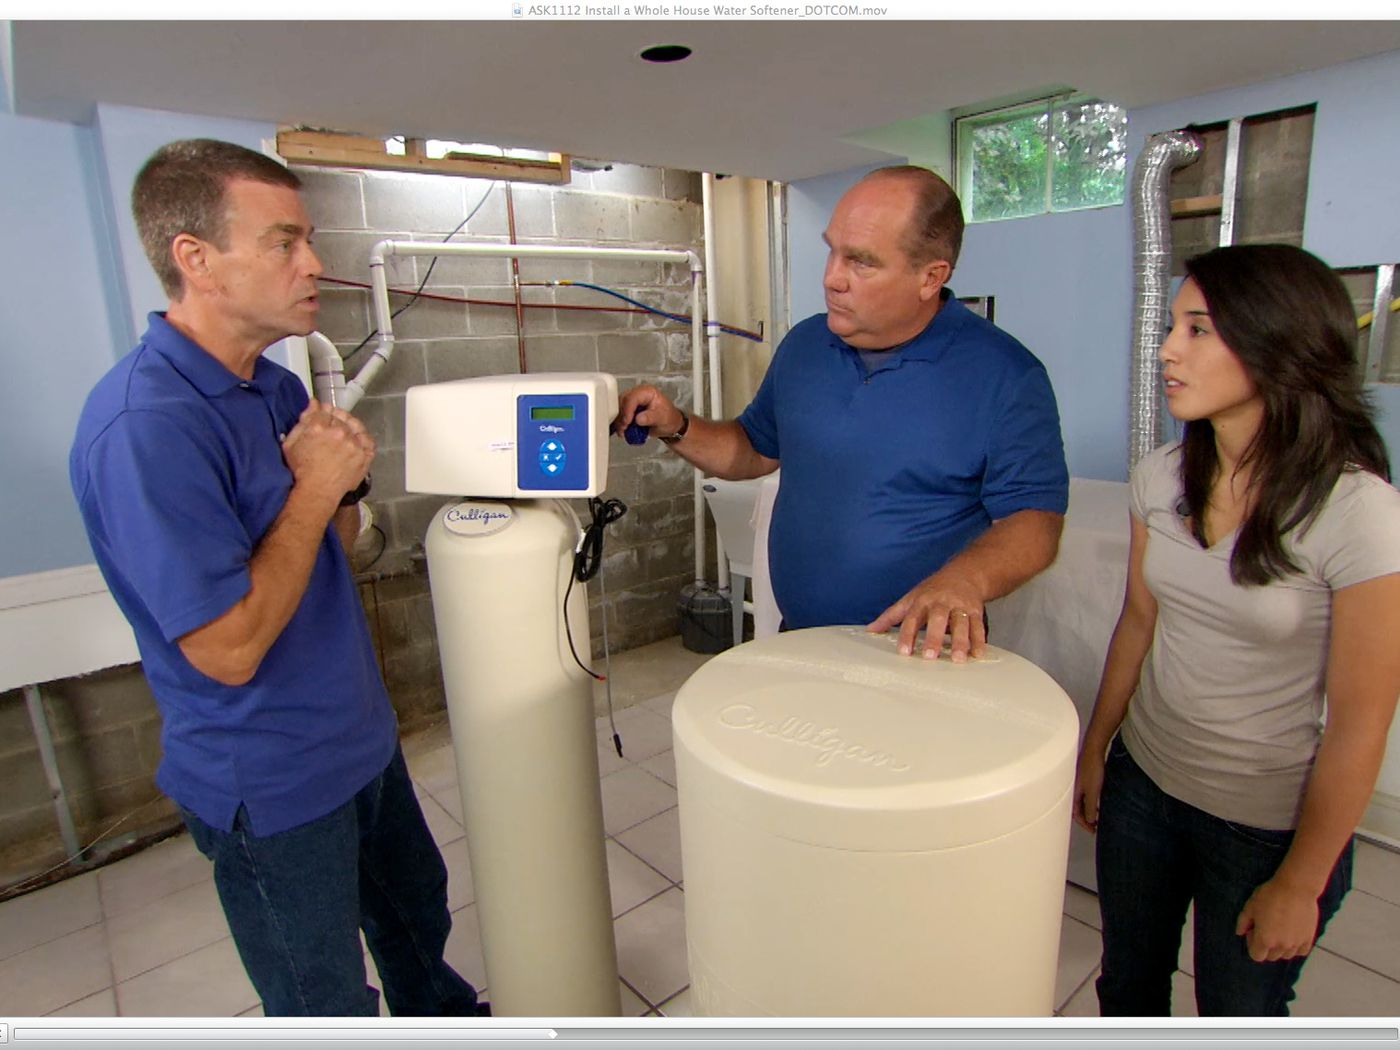 How To Install A Whole House Water Softener This Old House